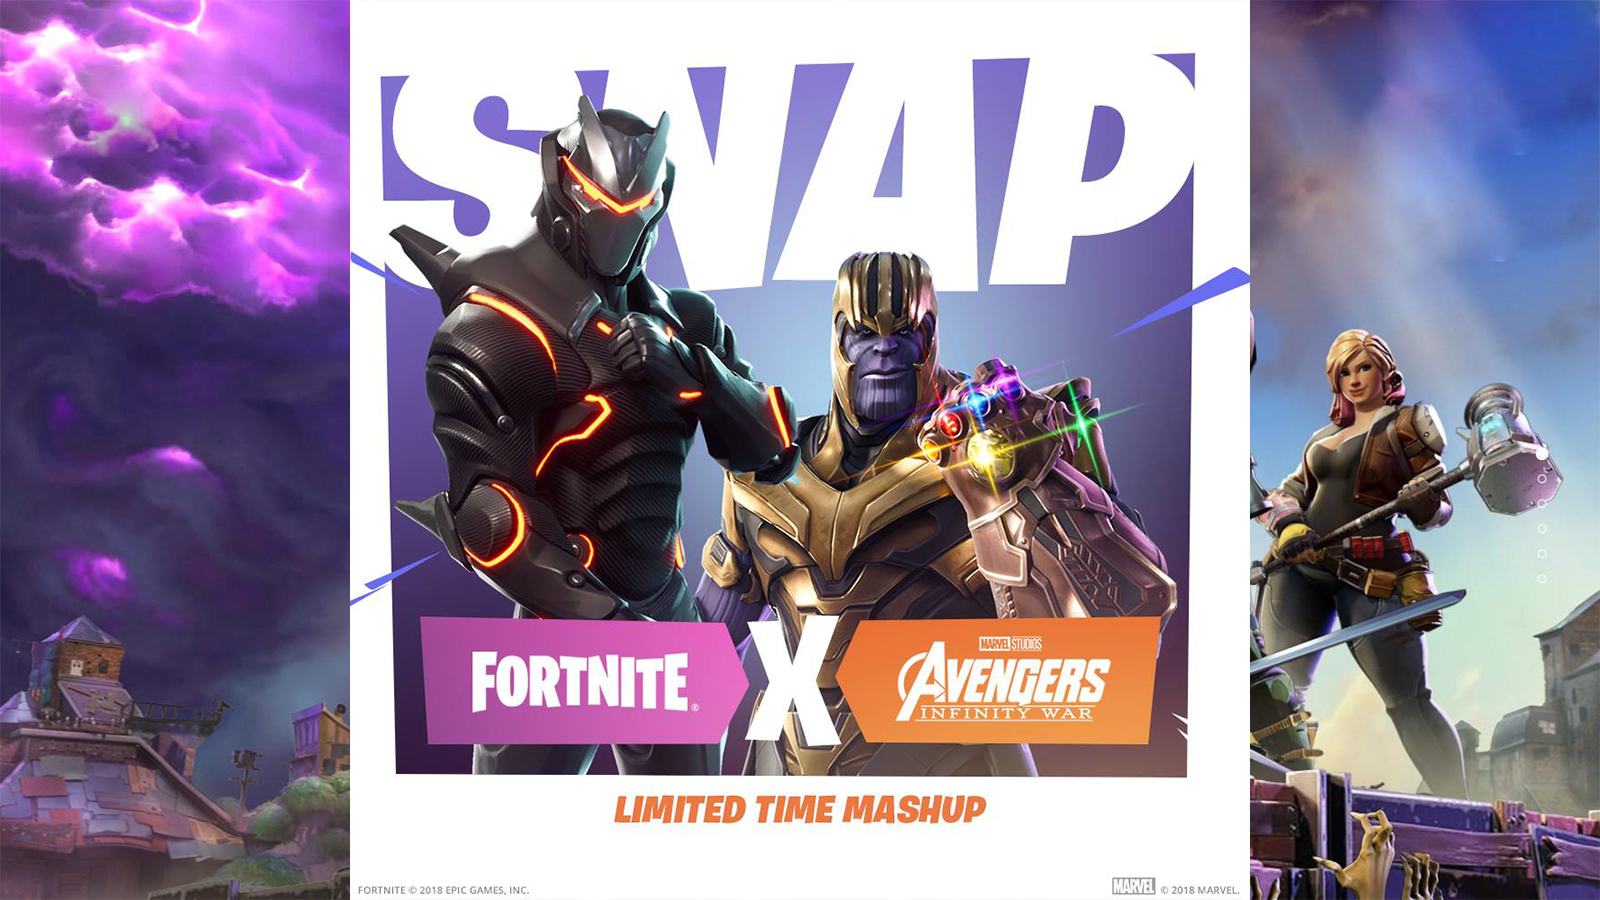 Facts You Need To Know About The Fortnite Avengers Infinity War Event